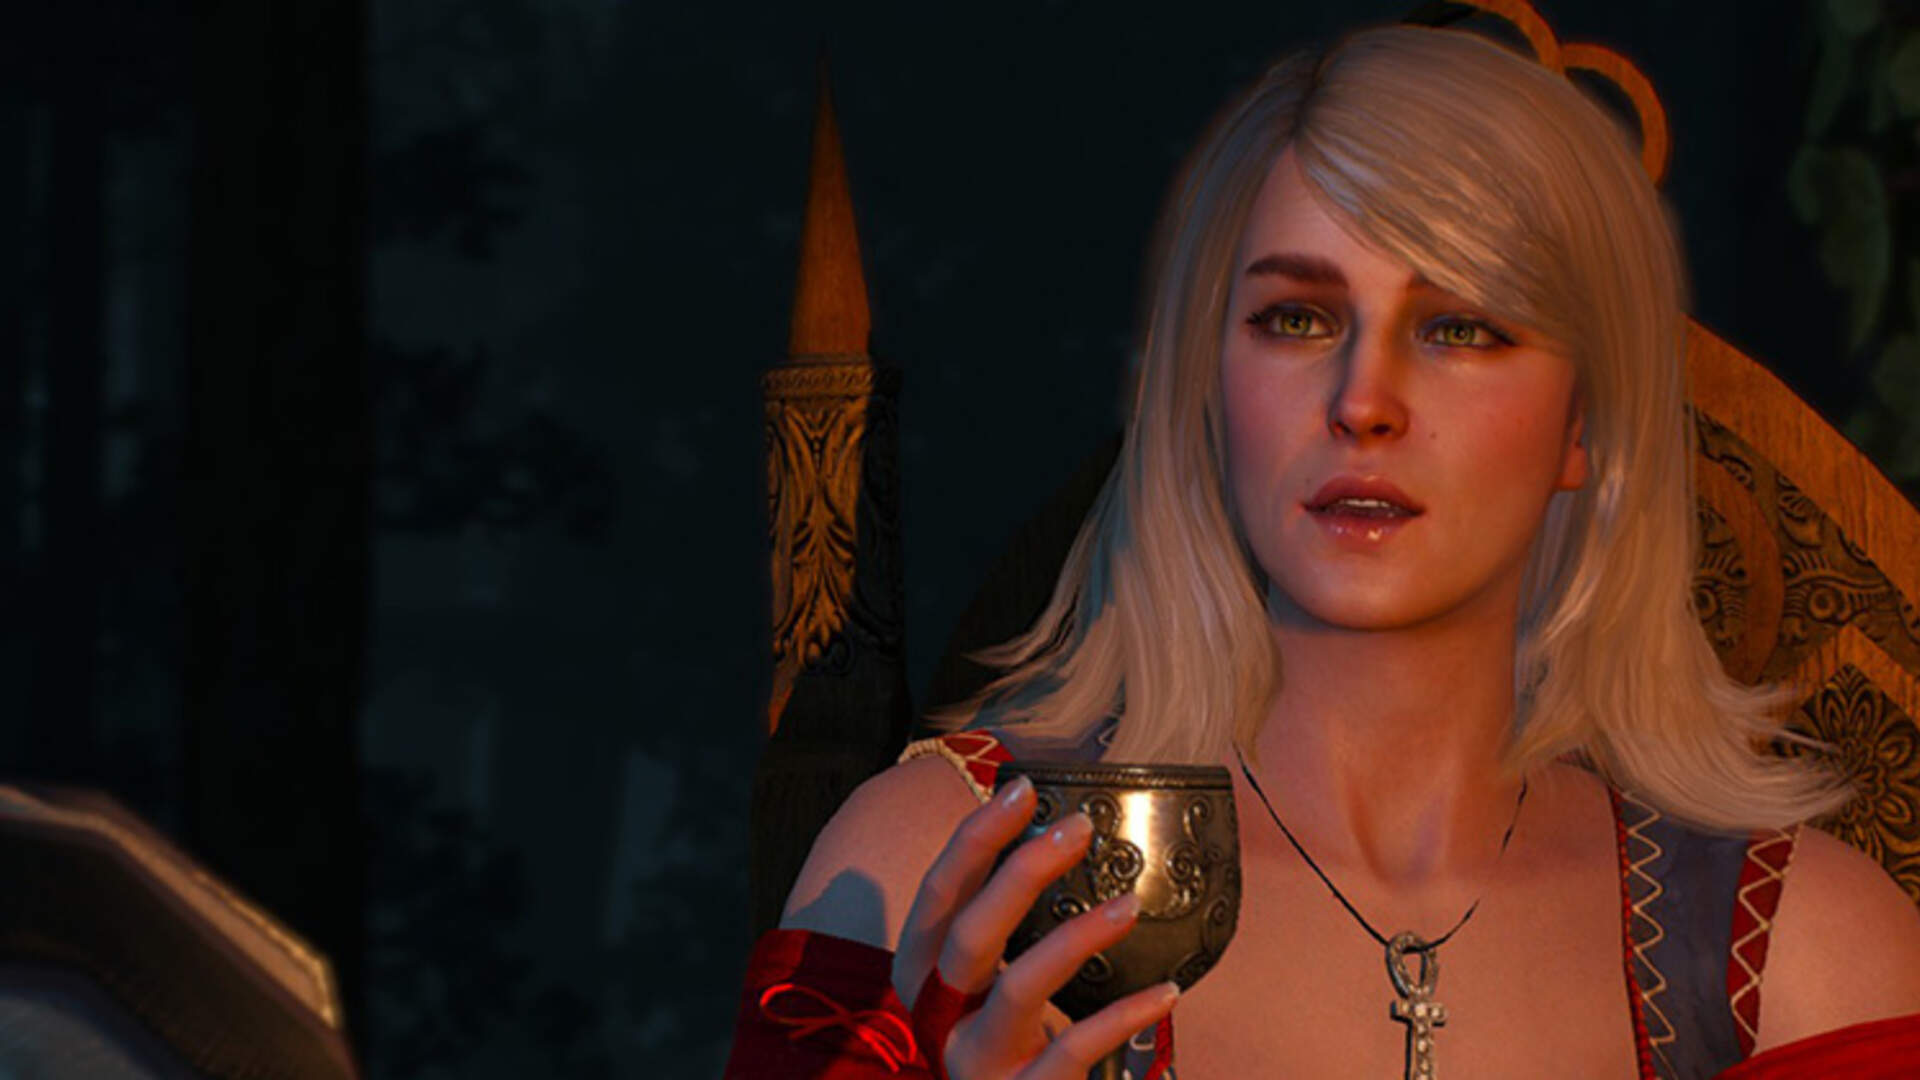 The Witcher 3 Romance - How to Romance Yennefer, Triss, Keira, and Others